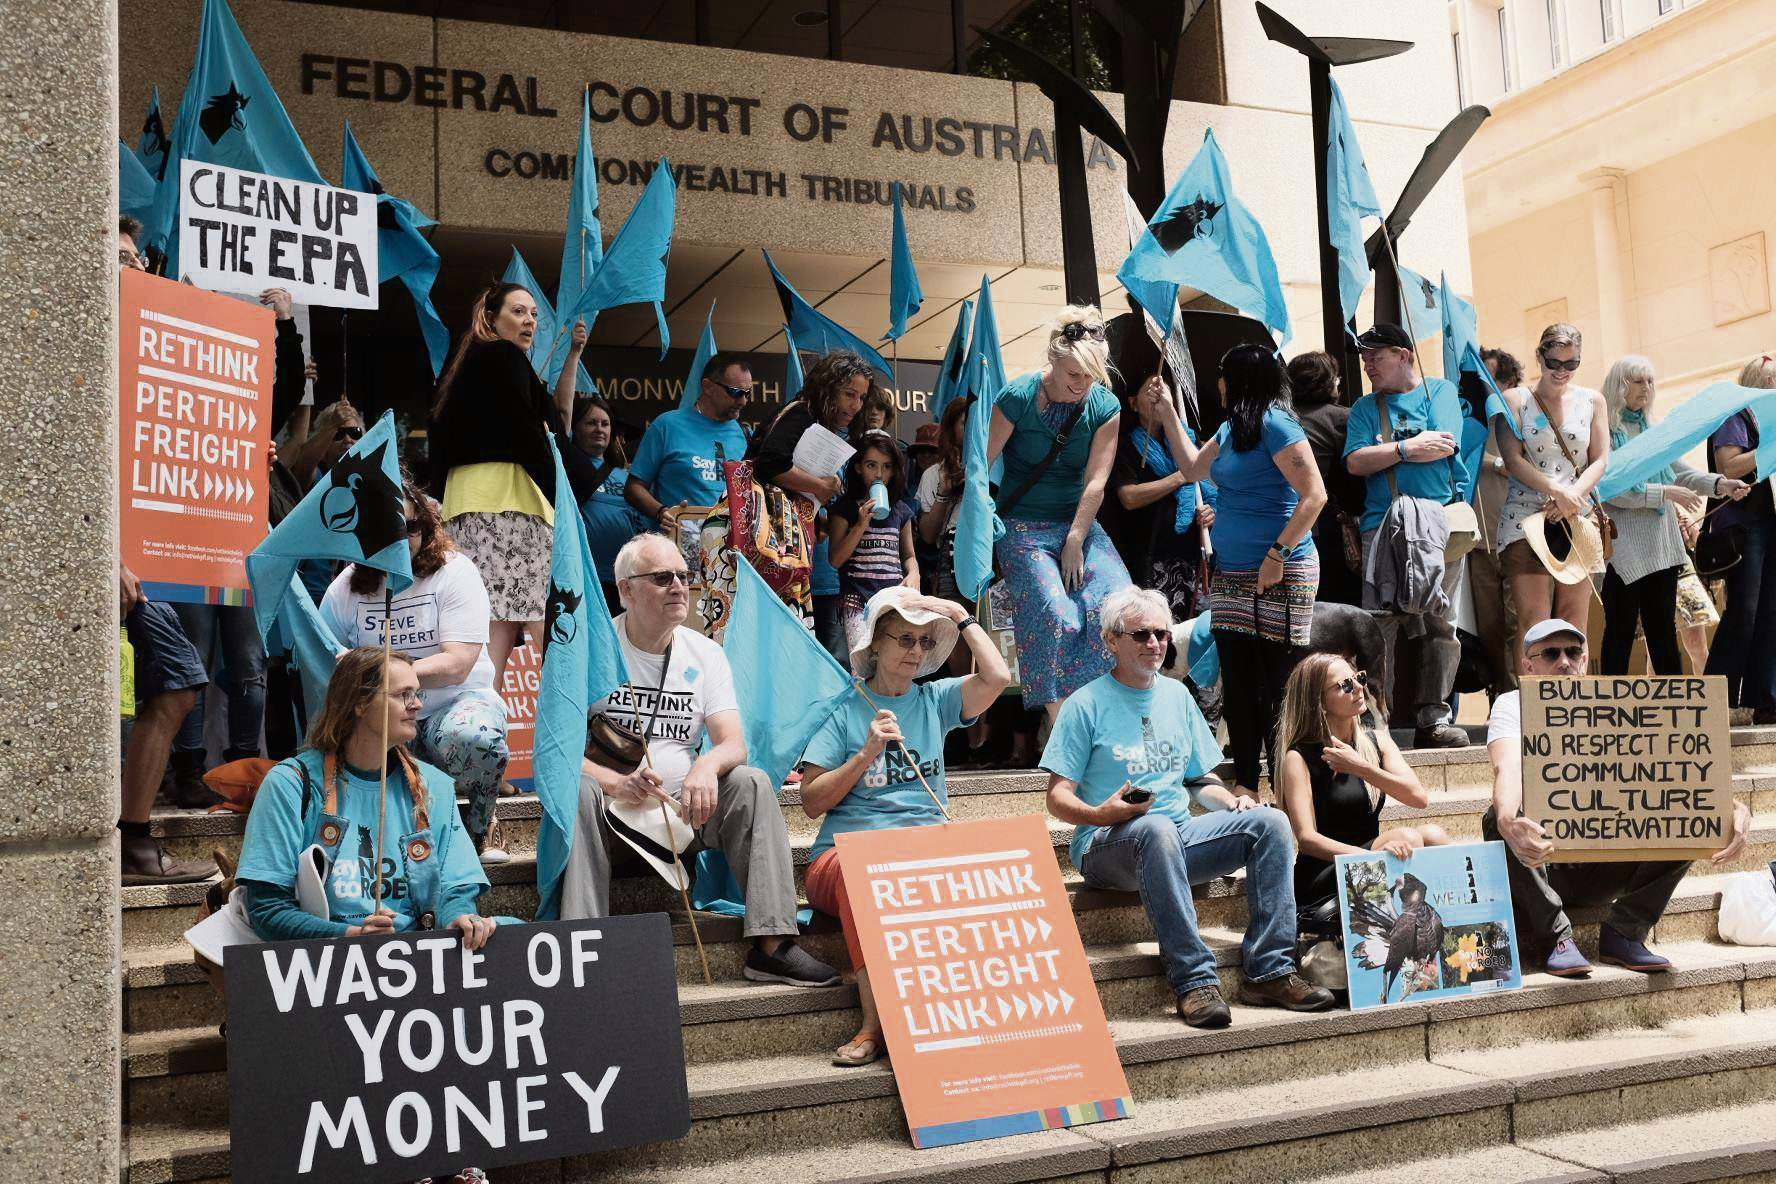 Roe 8 opponents fail to secure Federal Court injunction